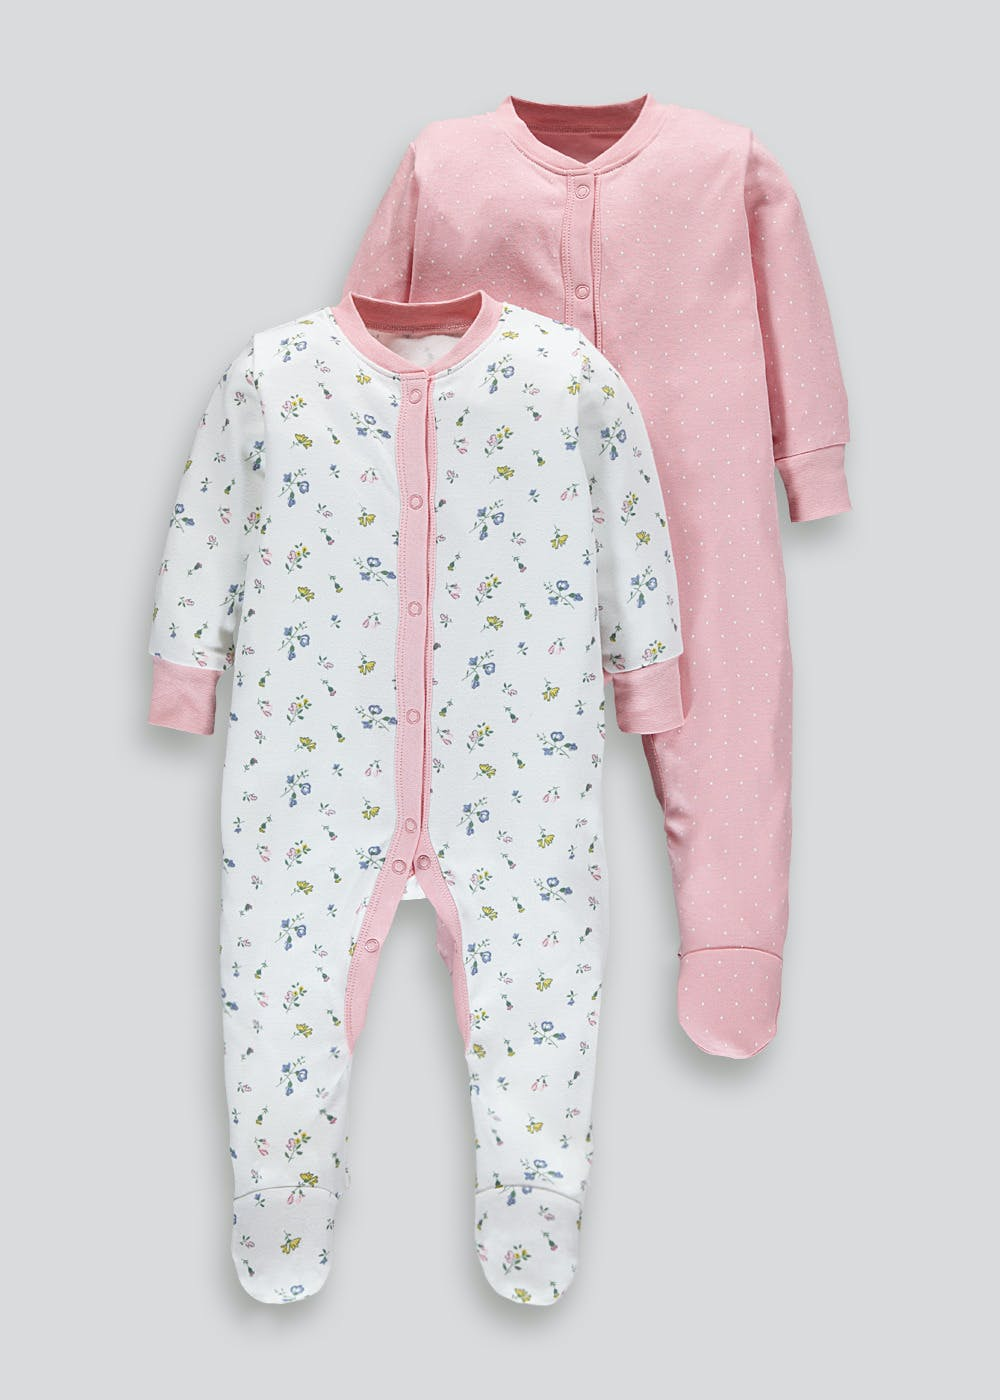 Girls 2 Pack Printed Baby Grows (Tiny Baby 18mths) by Matalan